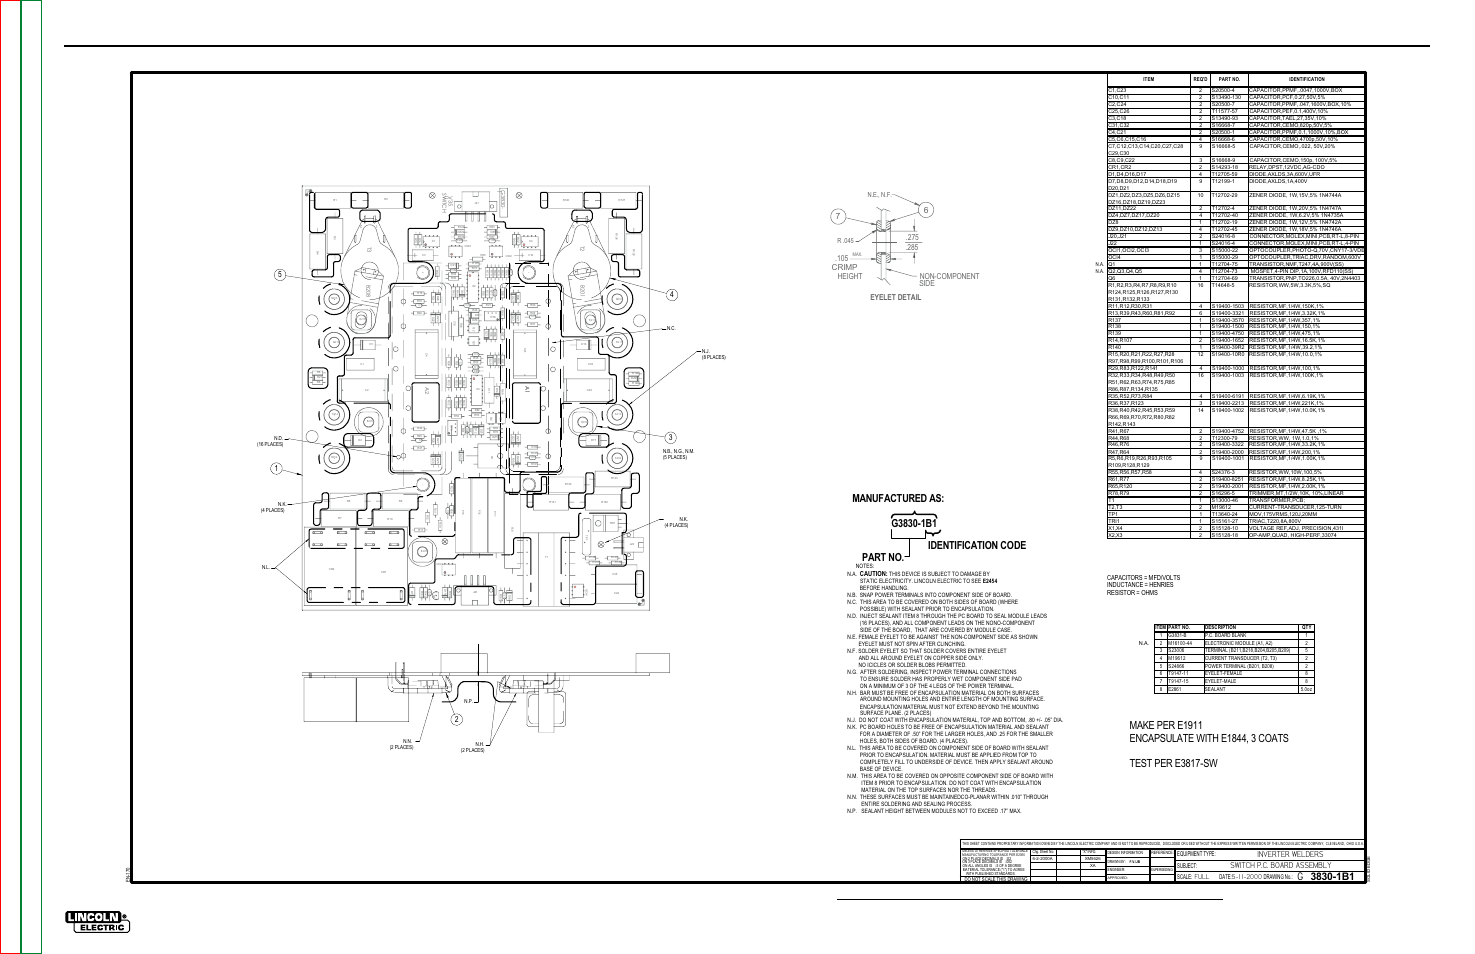 Electrical diagrams, G-12, Pc board assembly-switch